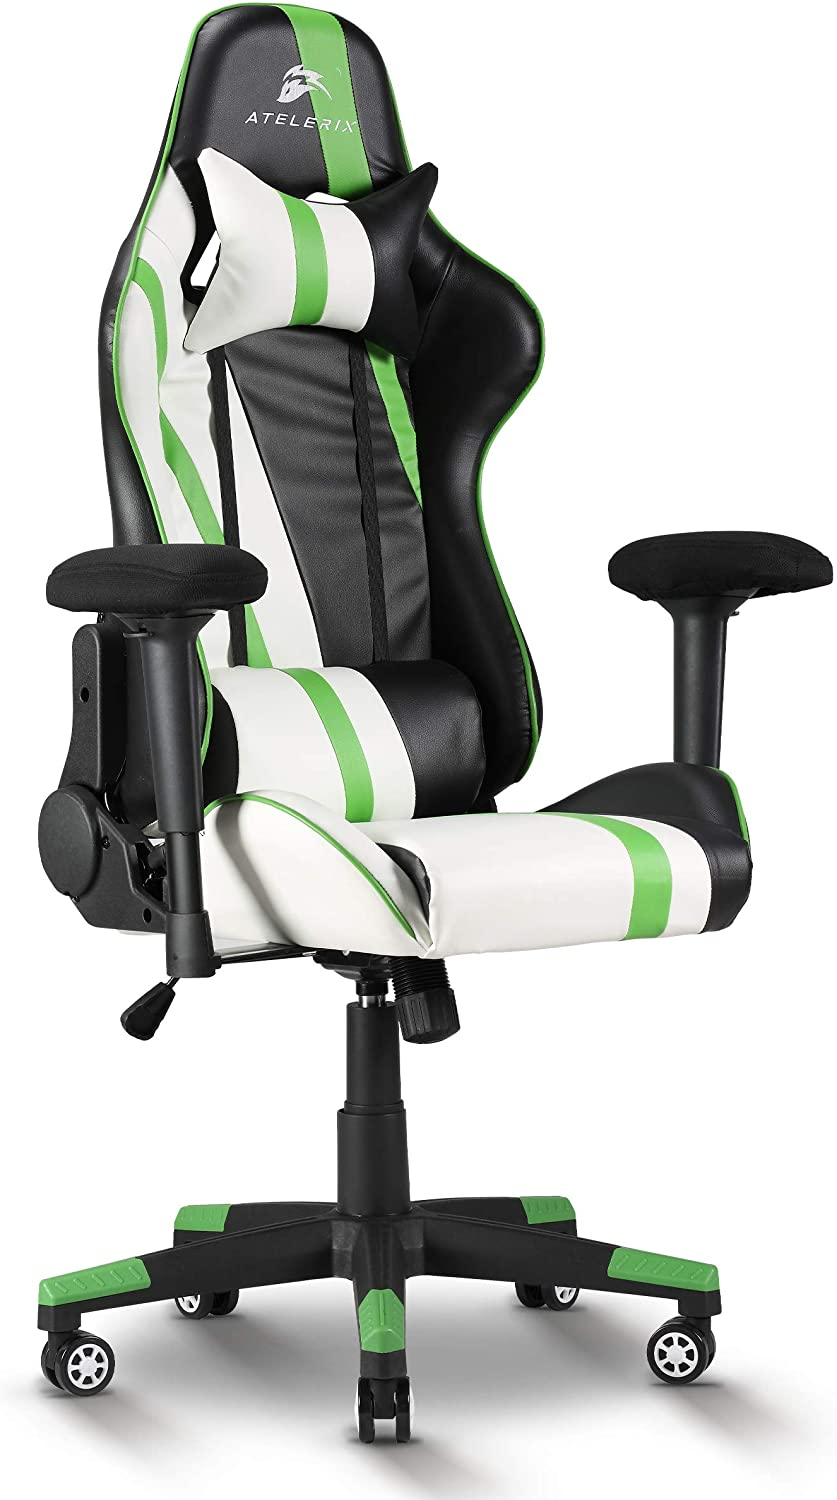 Atelerix Ventris Gaming Chair Office or Computer Chair Fabric /& Extra Wide Options Headrest /& Lumbar Support PU Leather Tilting /& Ergonomic Adjustable Swivel Game Chair w// 4D Covered Armrests